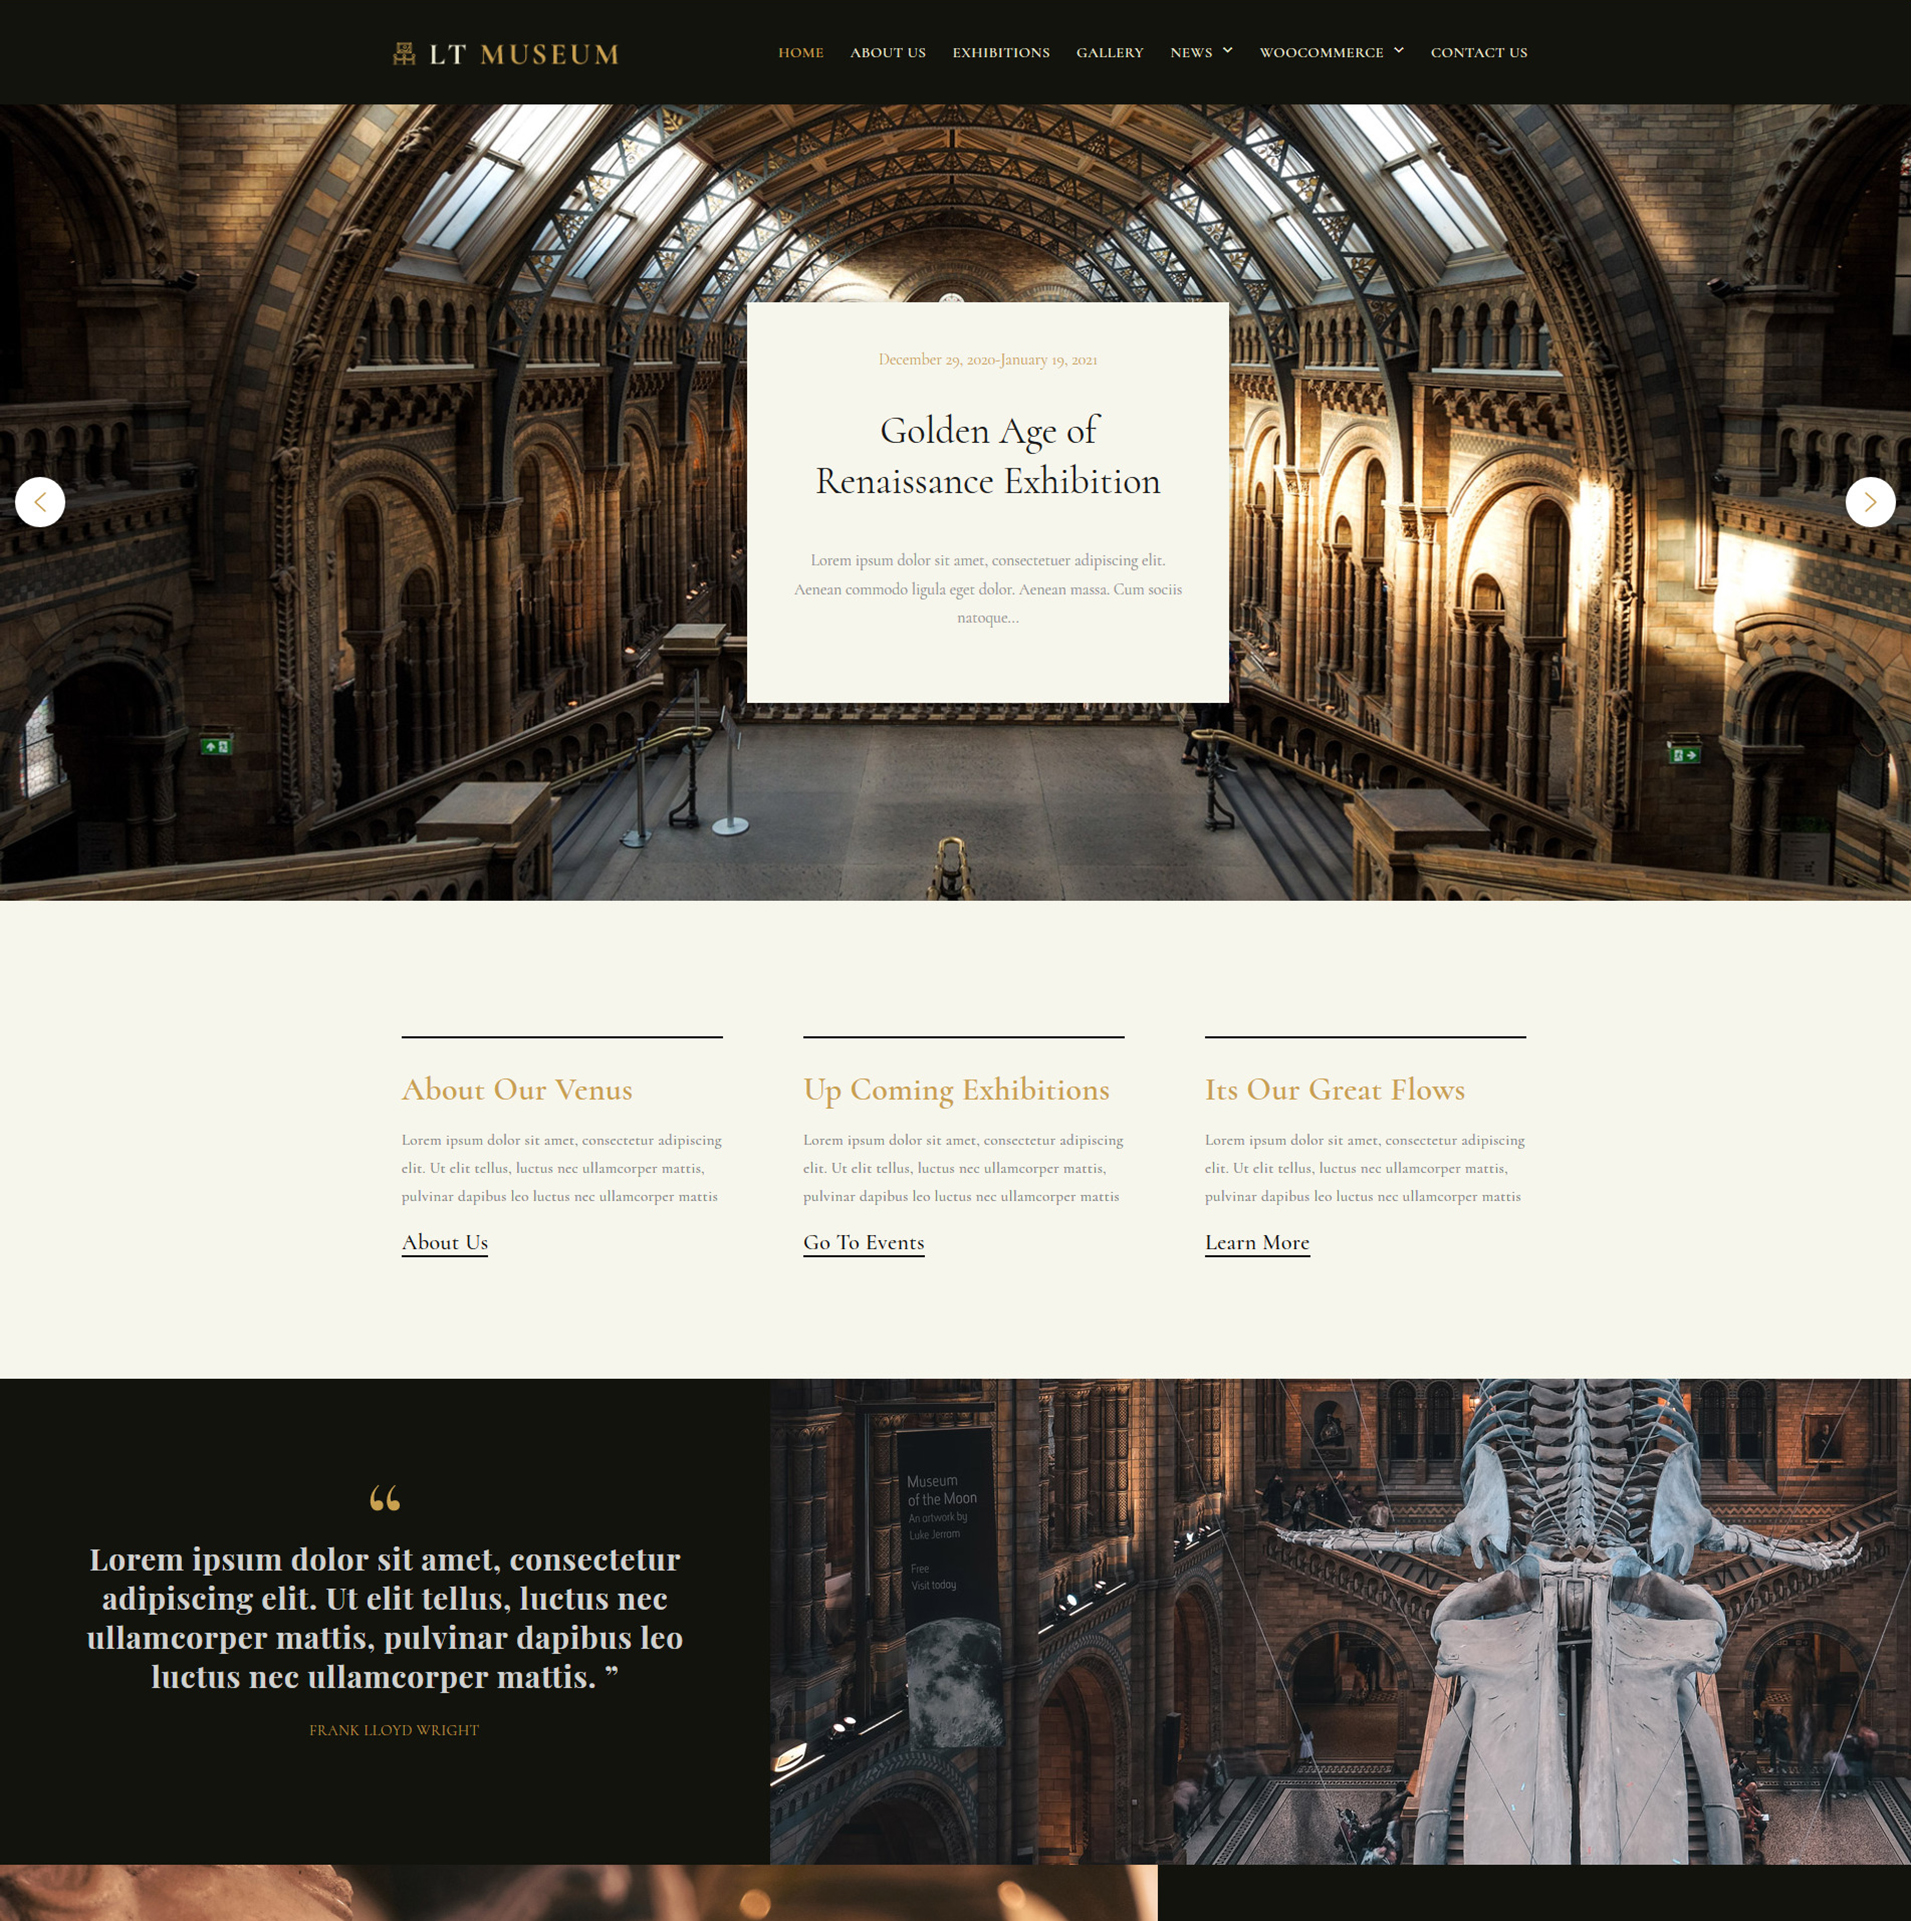 lt-musesum-wordpress-theme-full